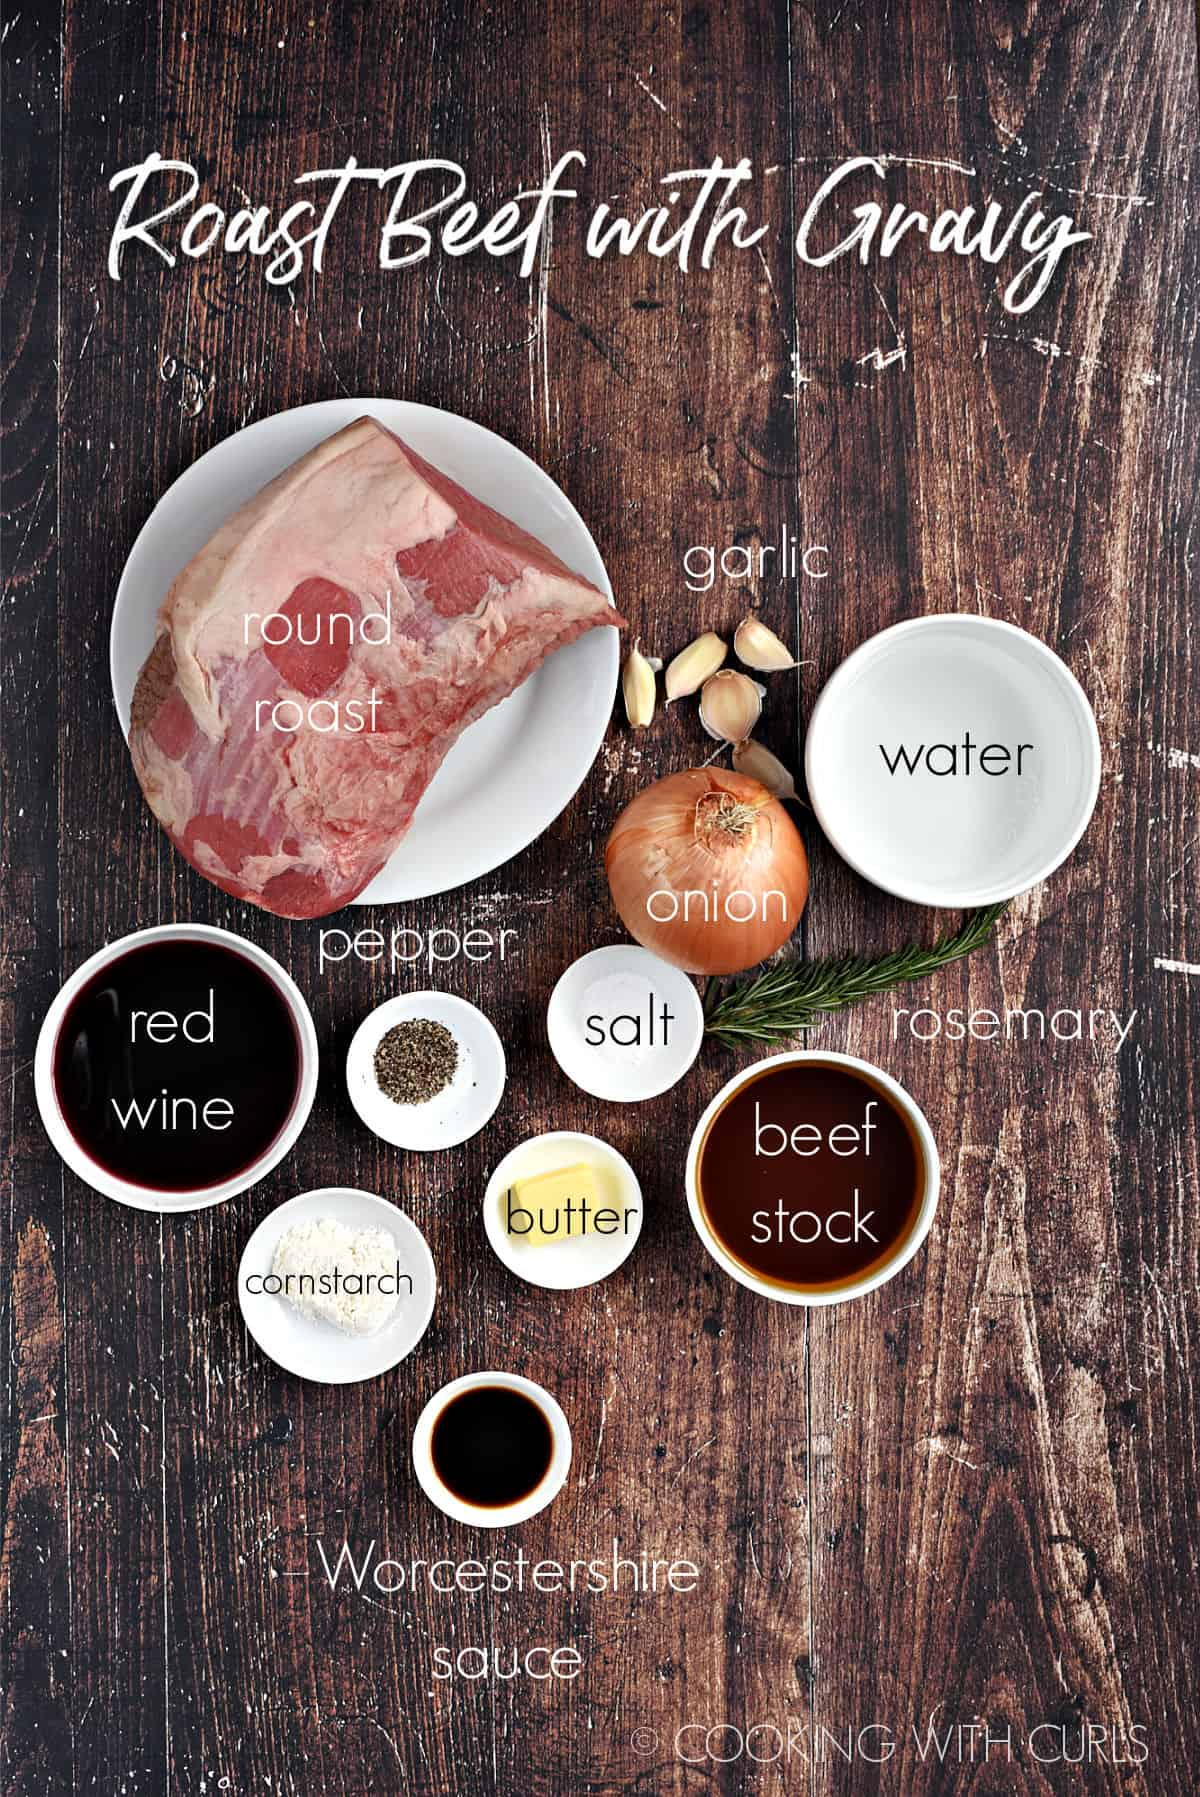 Ingredients to made roast beef with gravy in white bowls on a wood background.